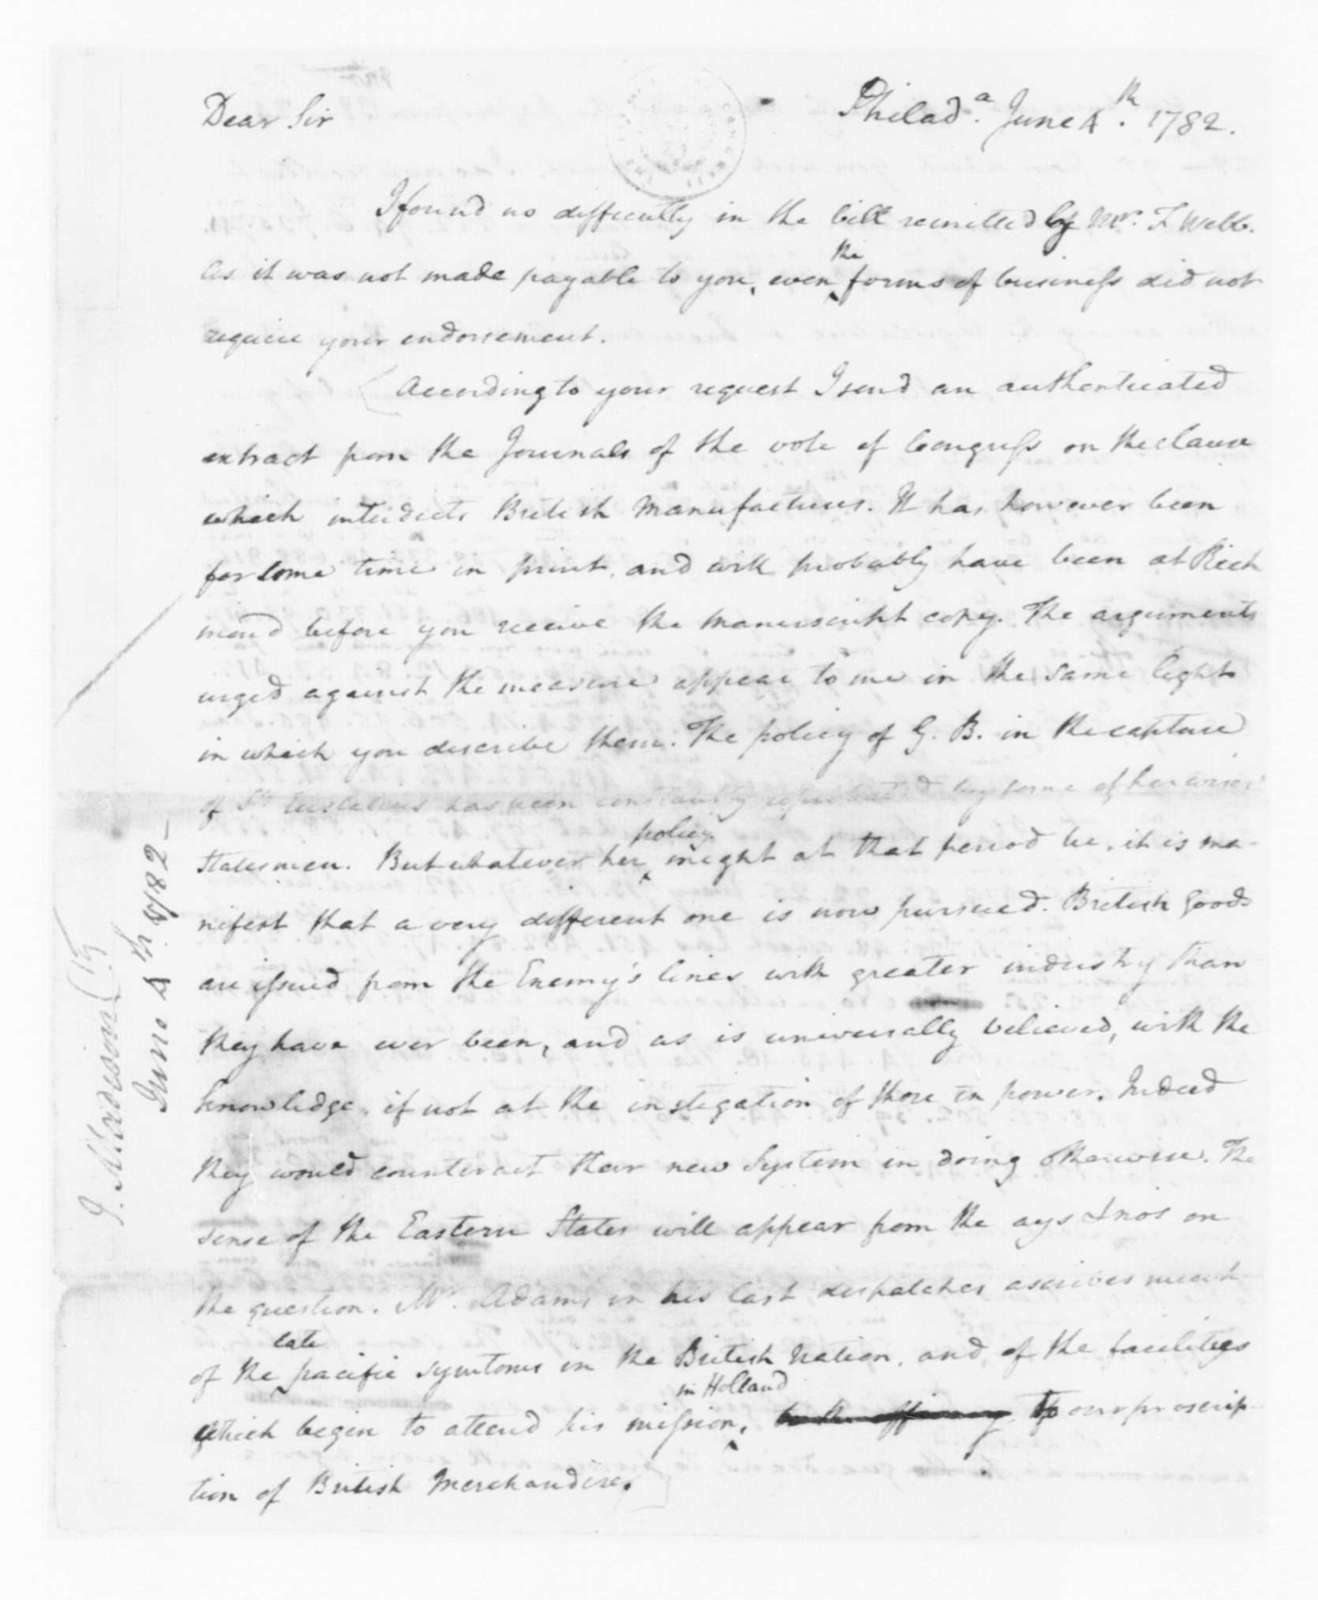 James Madison to Edmund Randolph, June 4, 1782. Partly in Cipher.